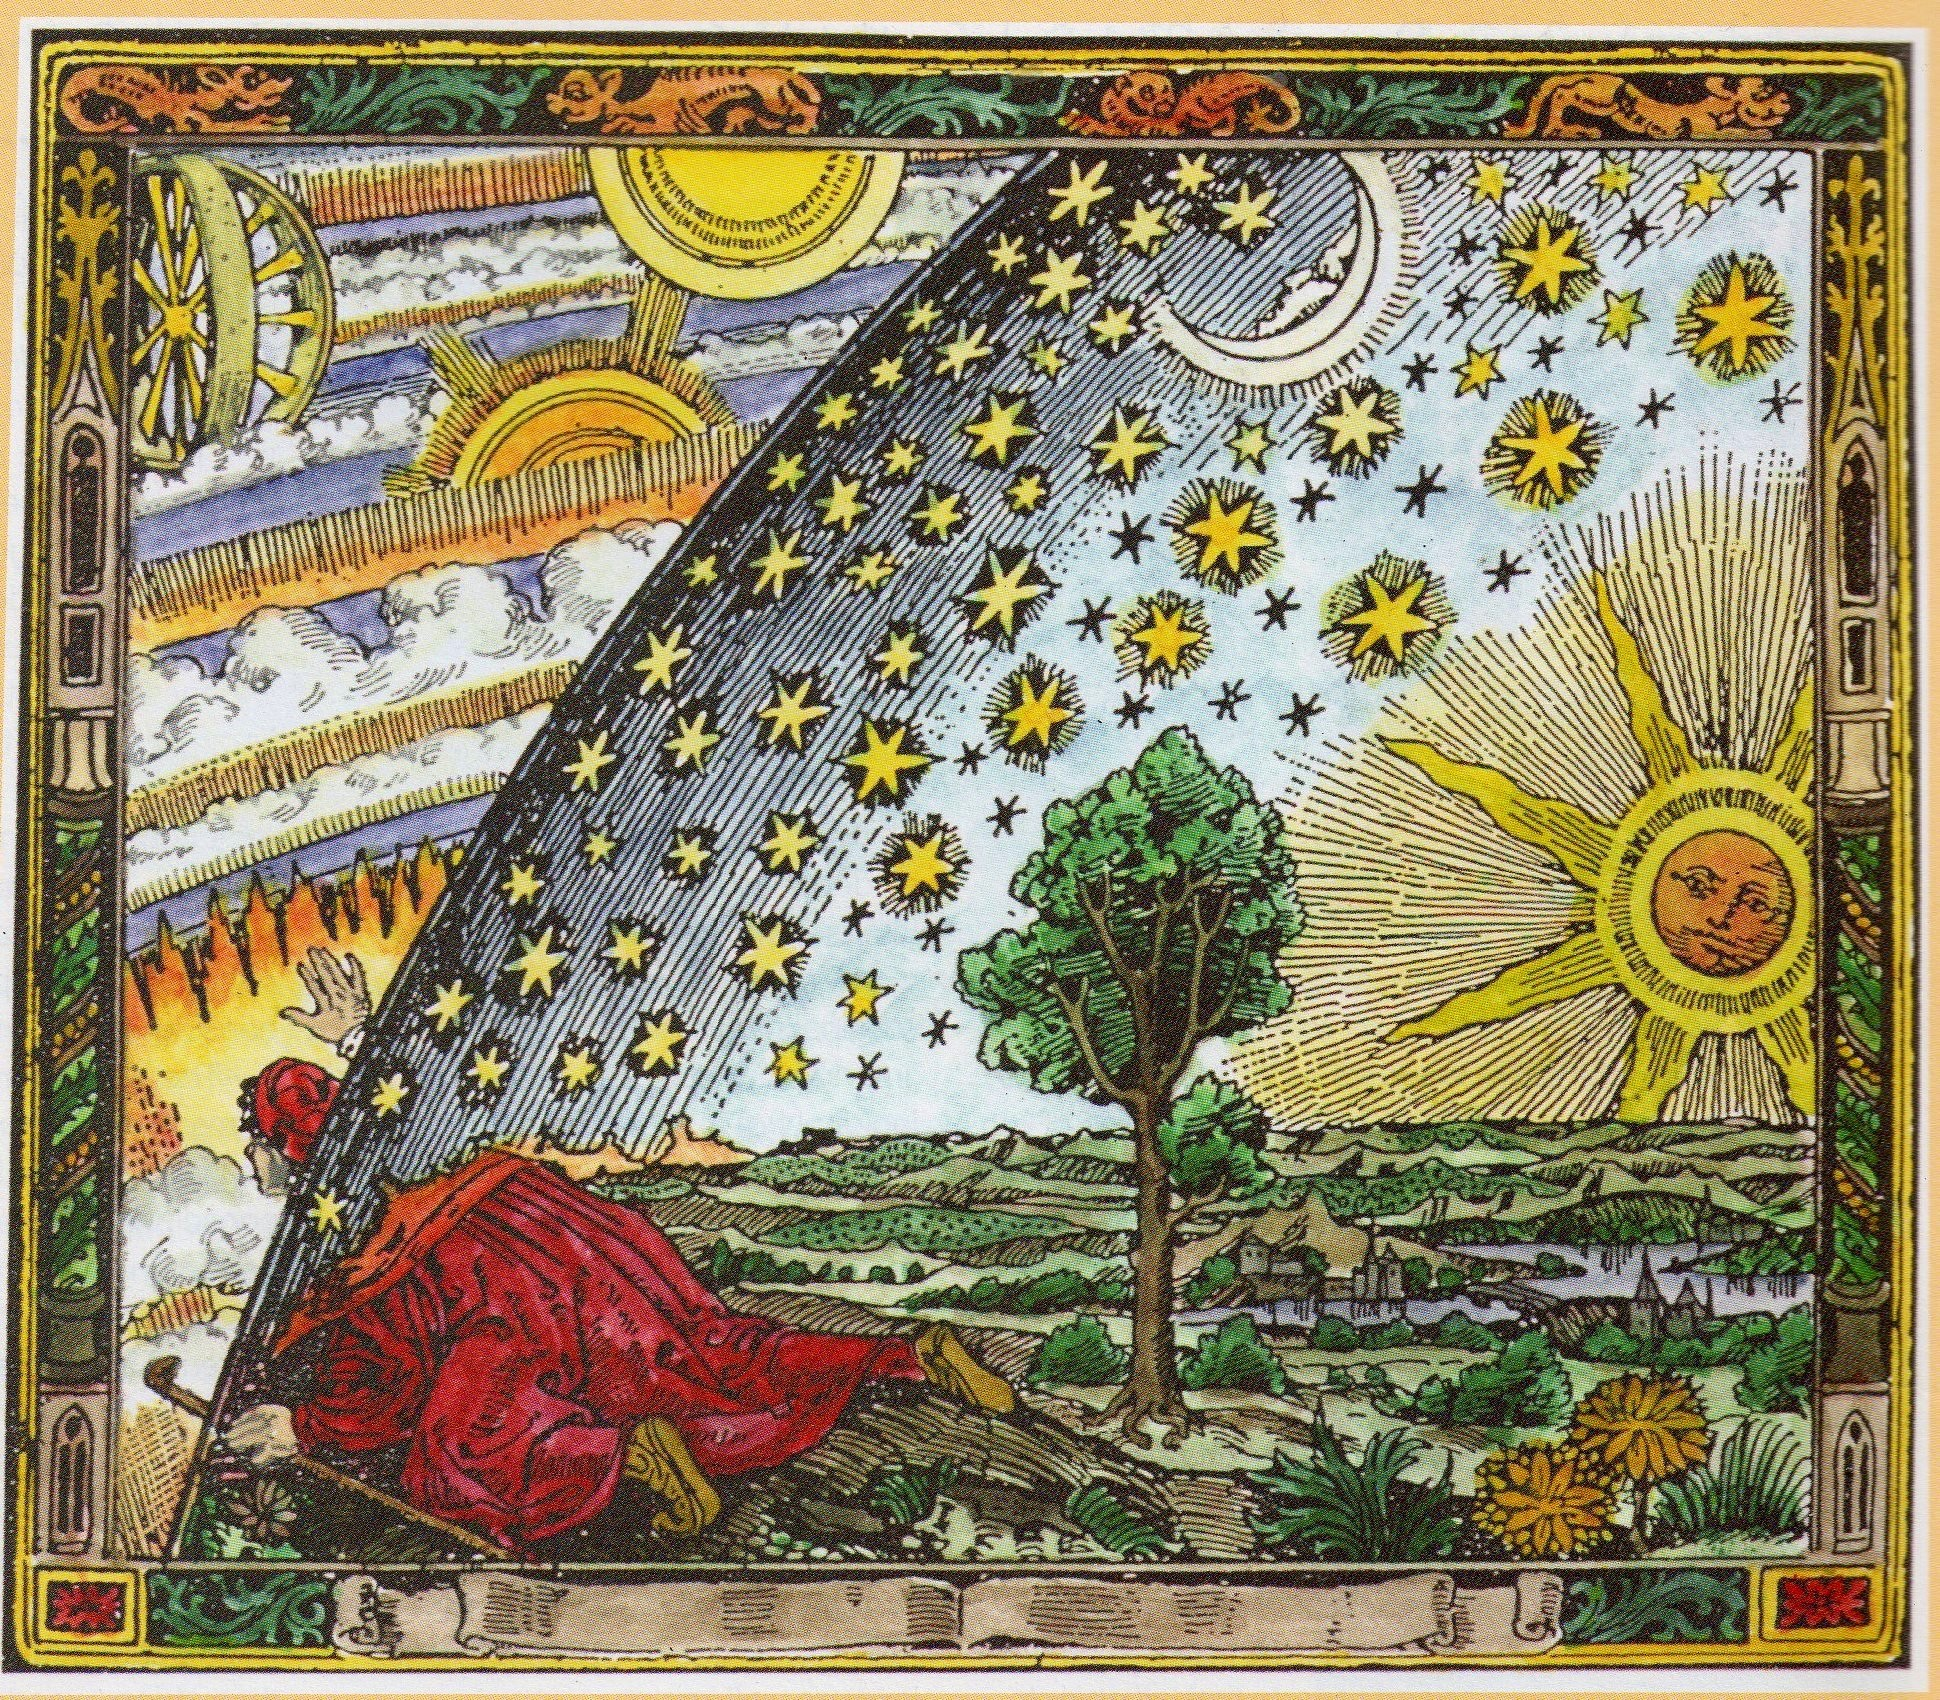 As above, so below - man is as connected to the firmament above as he is rooted to the earth.